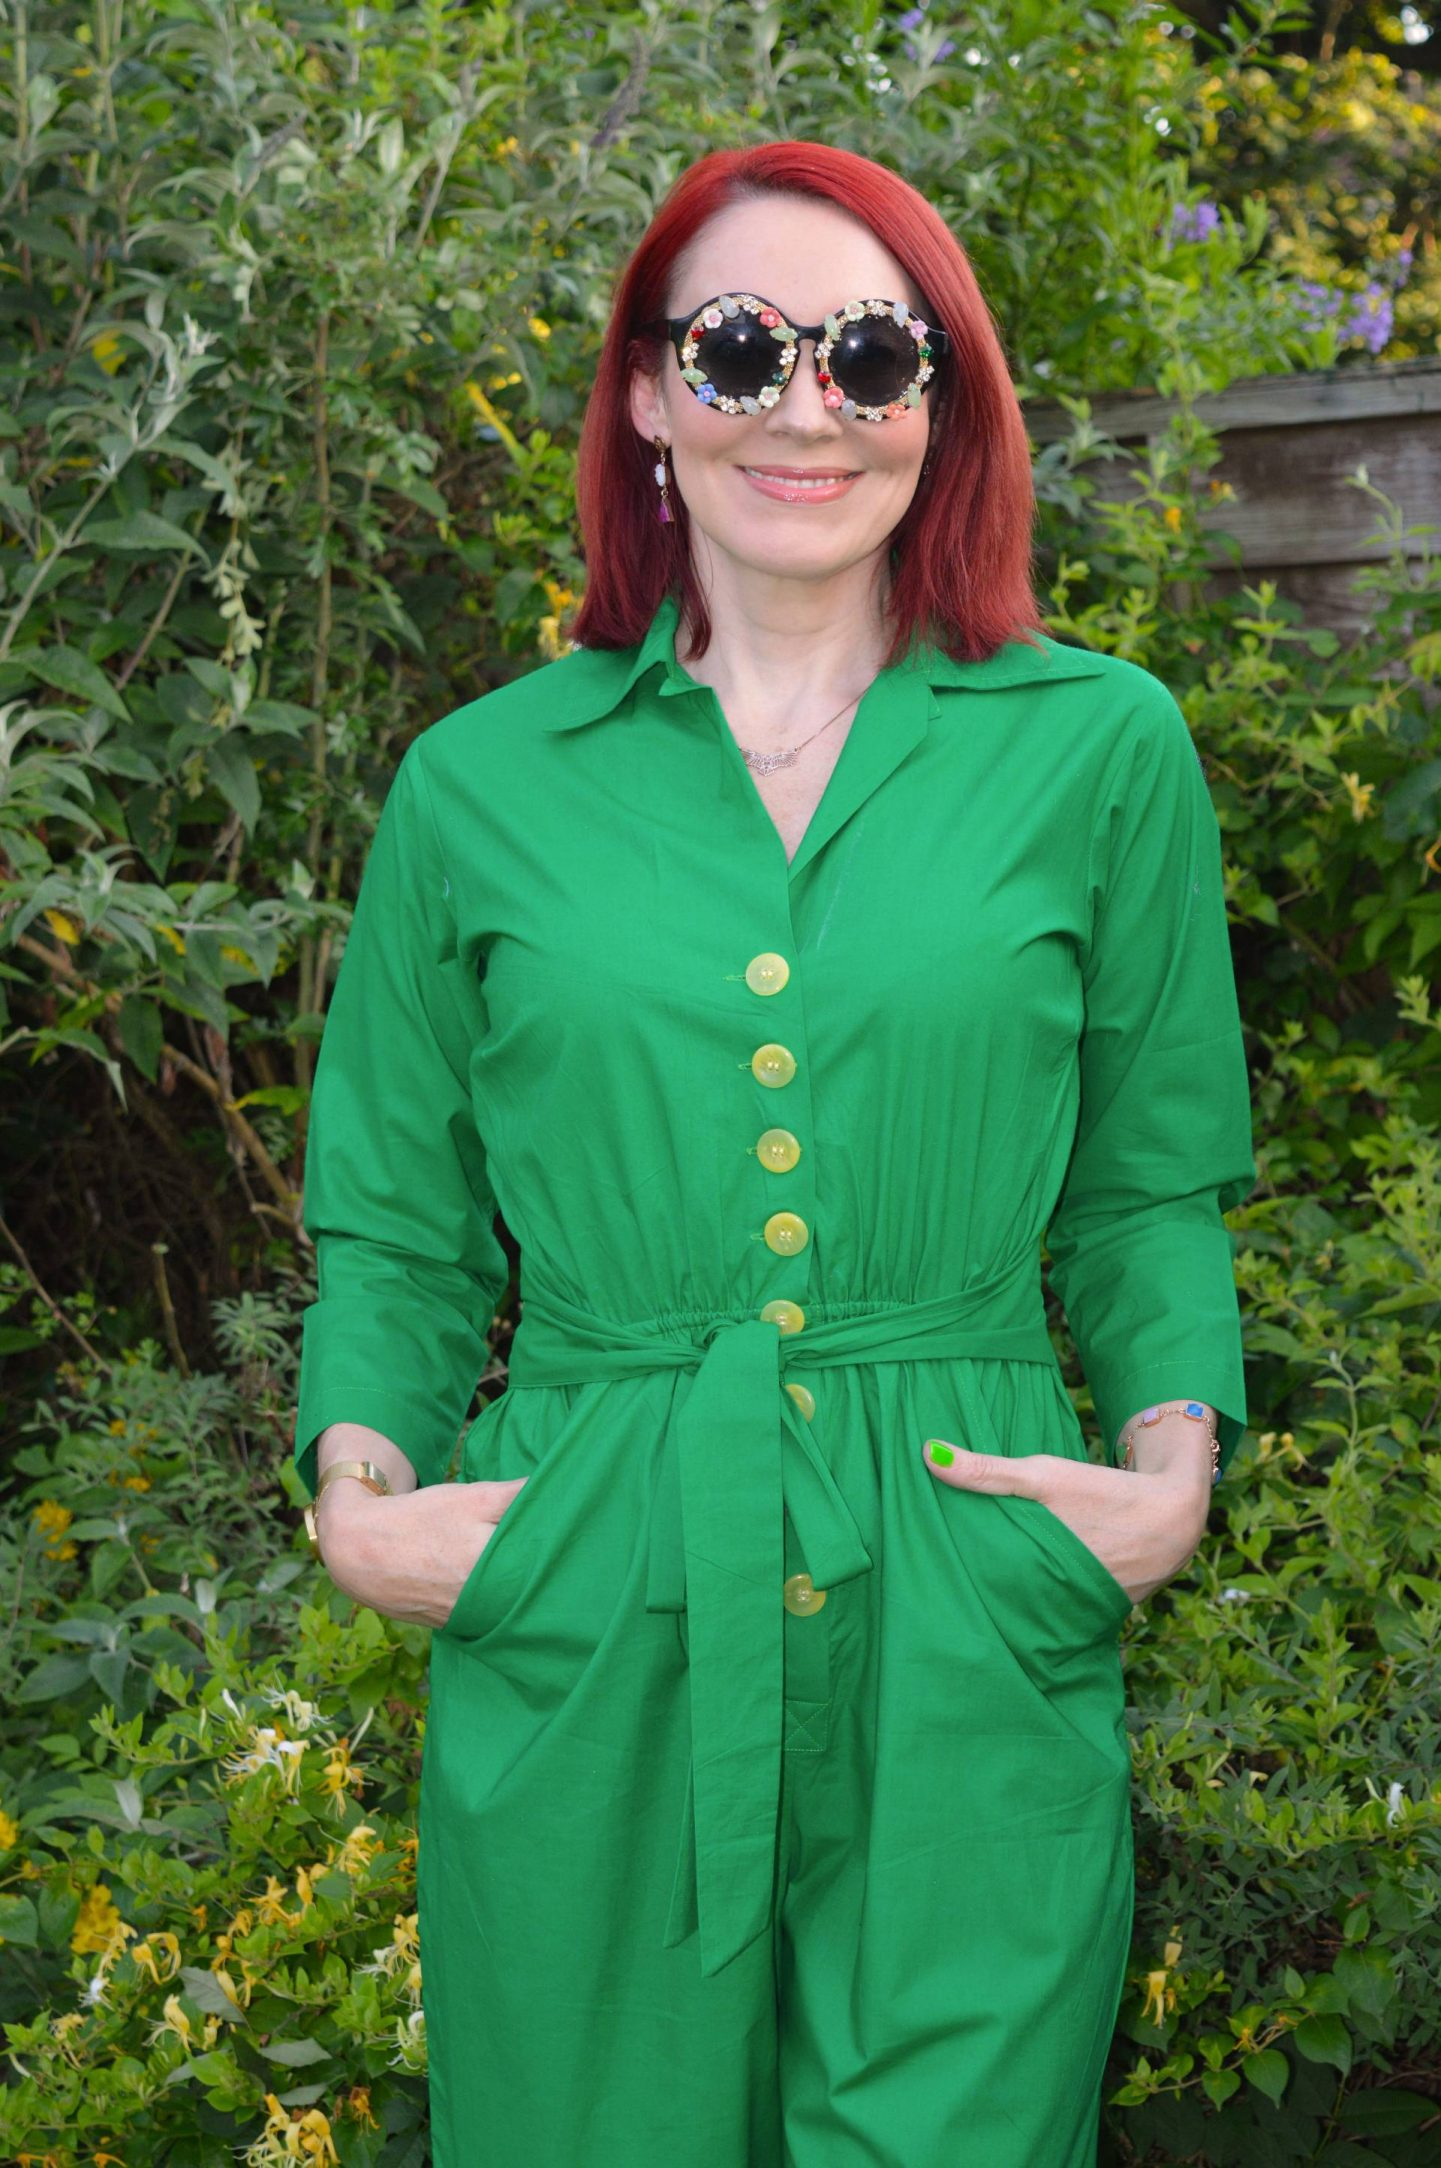 Sizzlin' Backyard BBQ Style - July's Stylish Monday Link Up, Love Your Look green parrot jumpsuit, Katy Perry embellished sunglasses